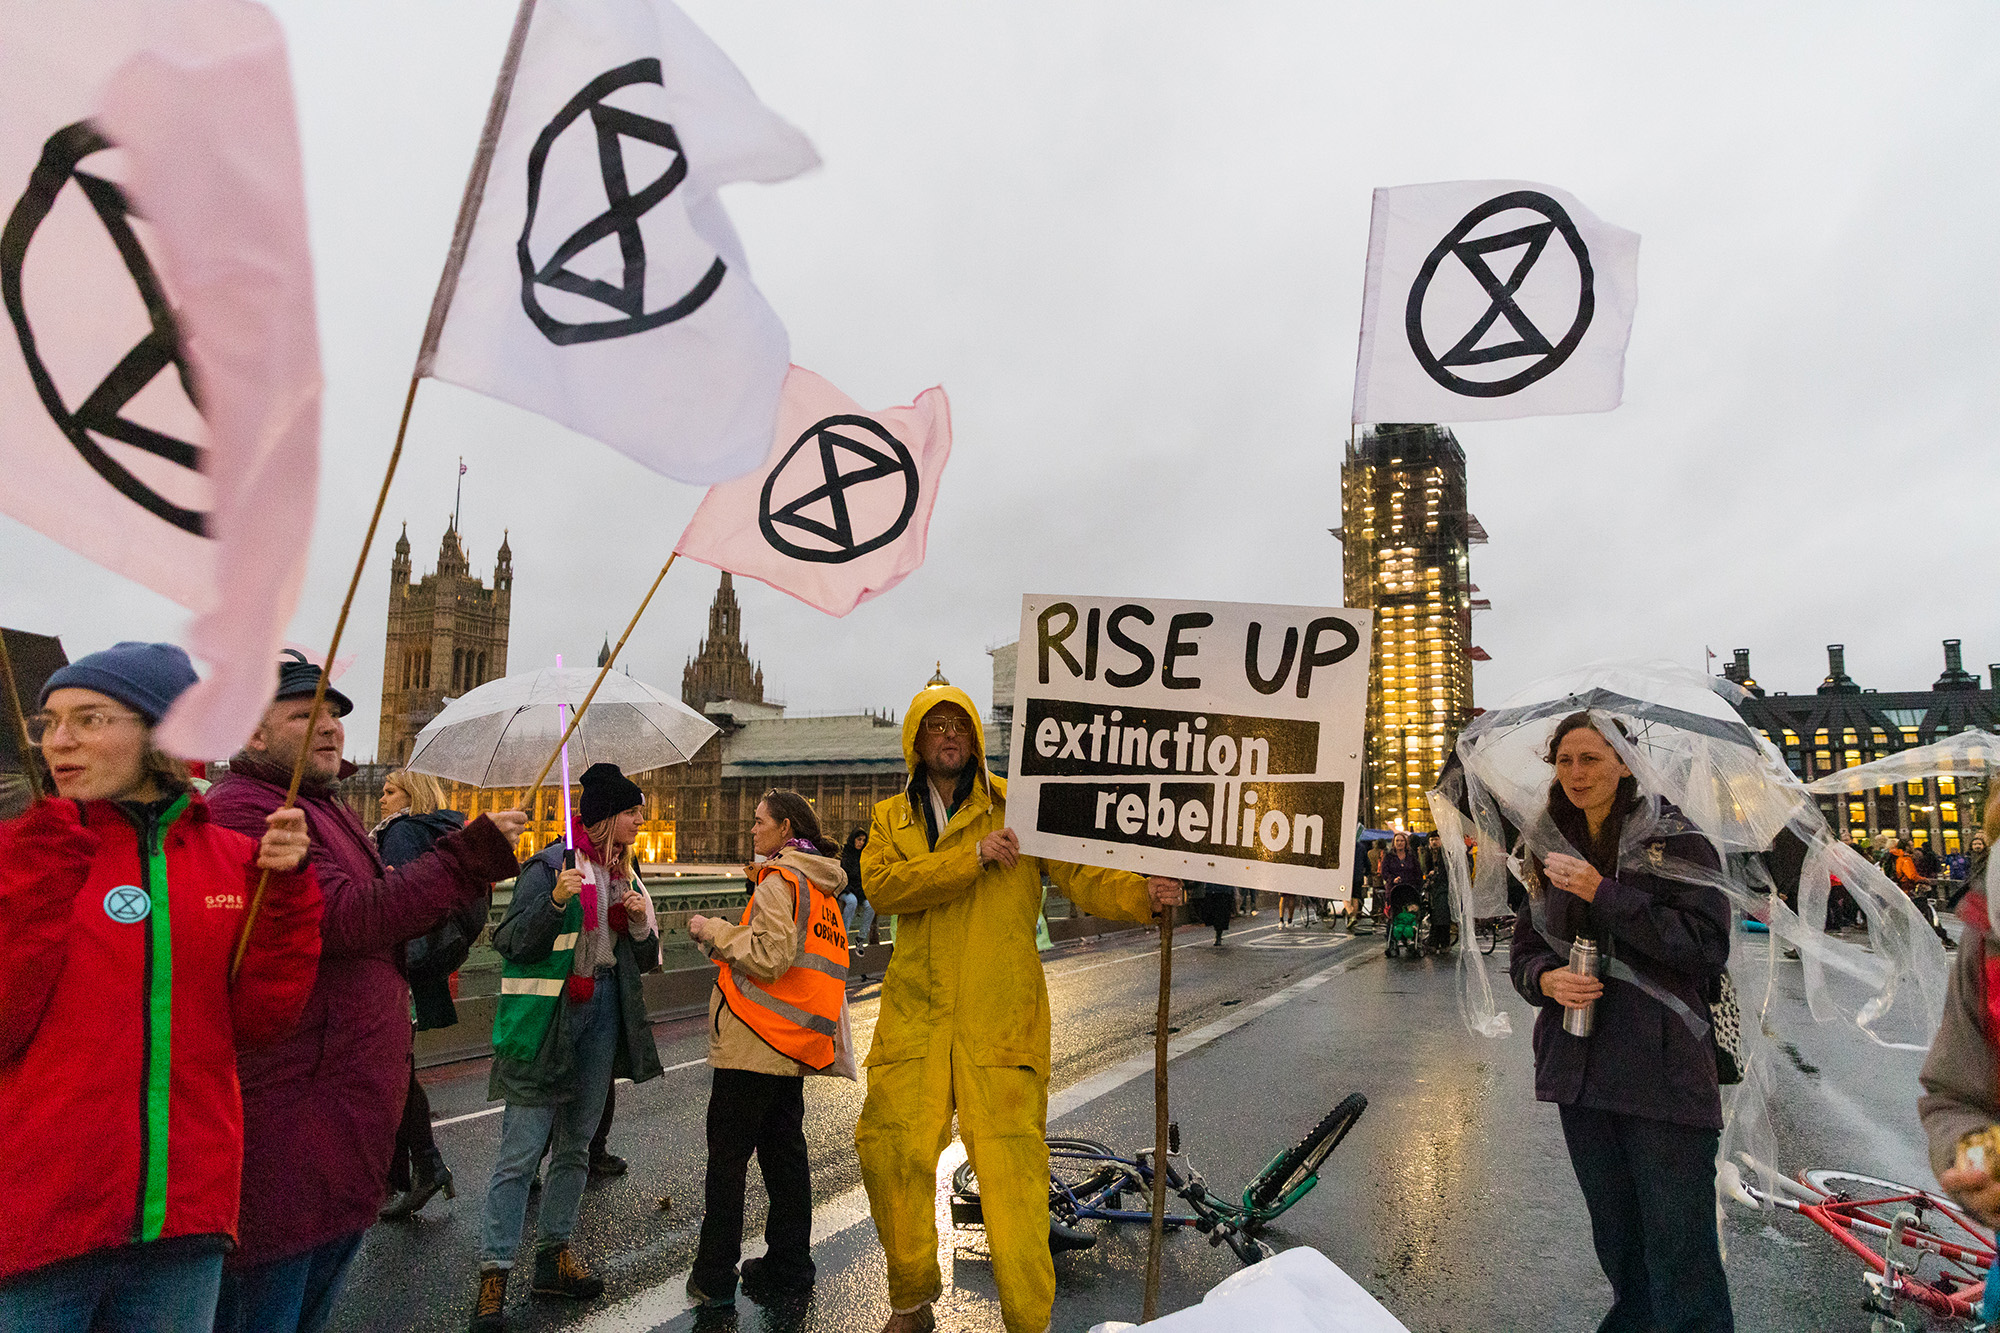 xtinction Rebellion protesters rally on Westminster Bridge in London, Britain, after an action at the nearby Ministry of Defence (MOD) headquarters, 7 October 2019. (Photo: EPA-EFE / Vickie Flores)